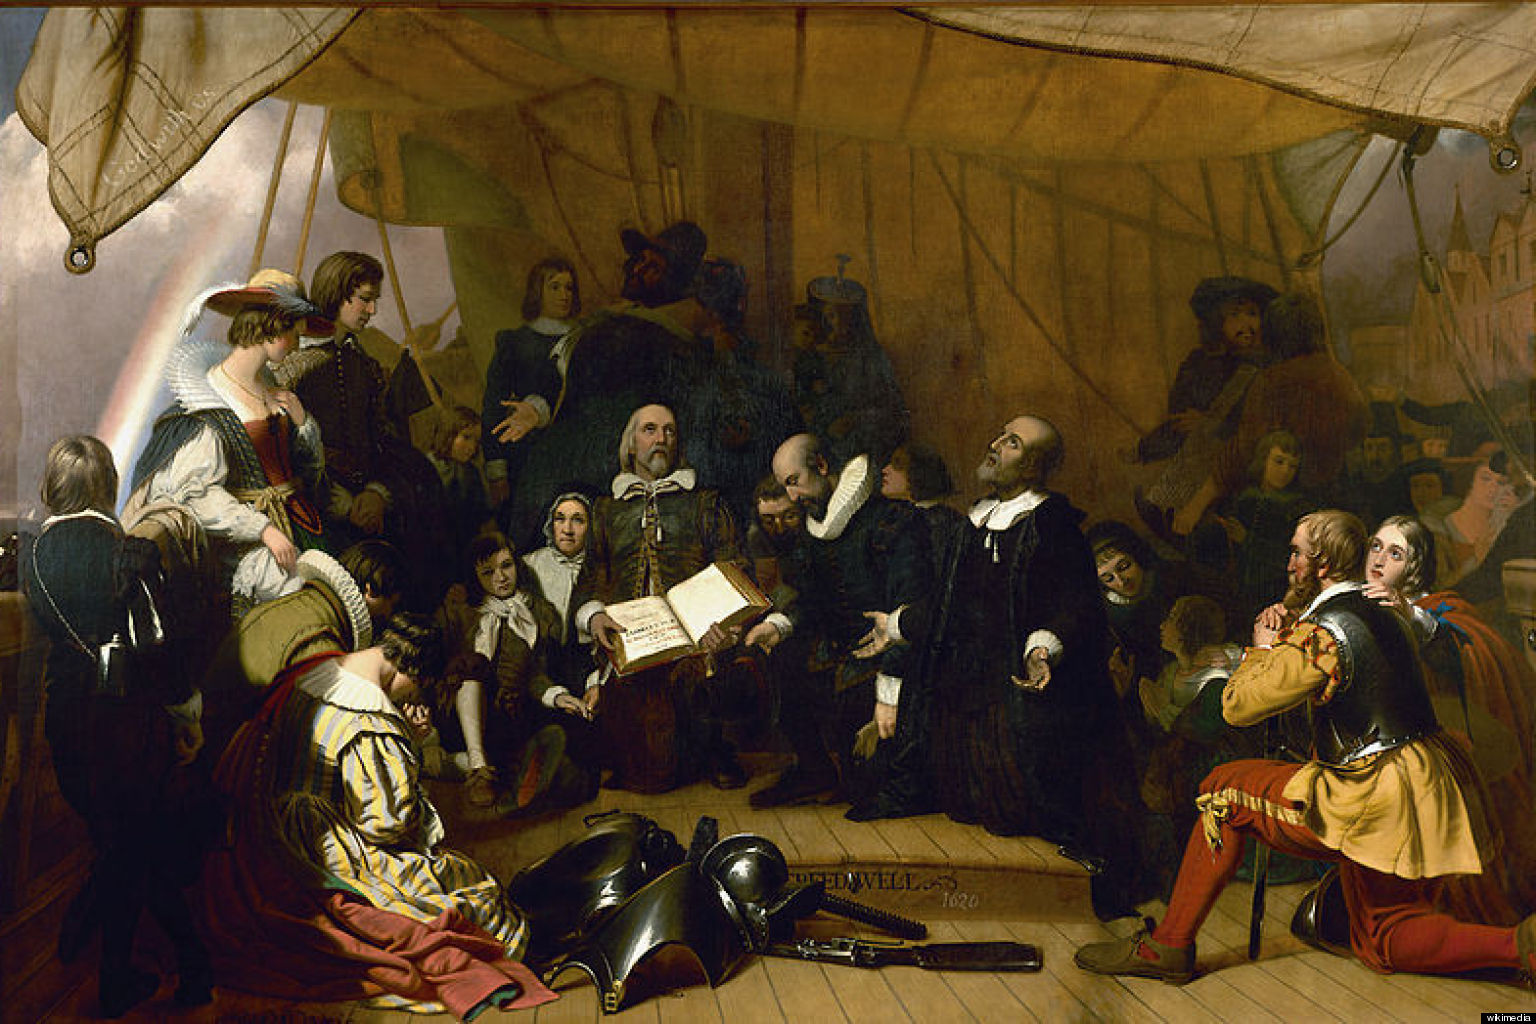 an analysis of the ideologies of the puritan movement in england The puritan movement came about as a result of disagreement between the anglican church of england and several other religious sects the puritans were inspired and influenced by the leadership of john calvin in the late 1600s, a group of puritans migrated to north america to establish religious.